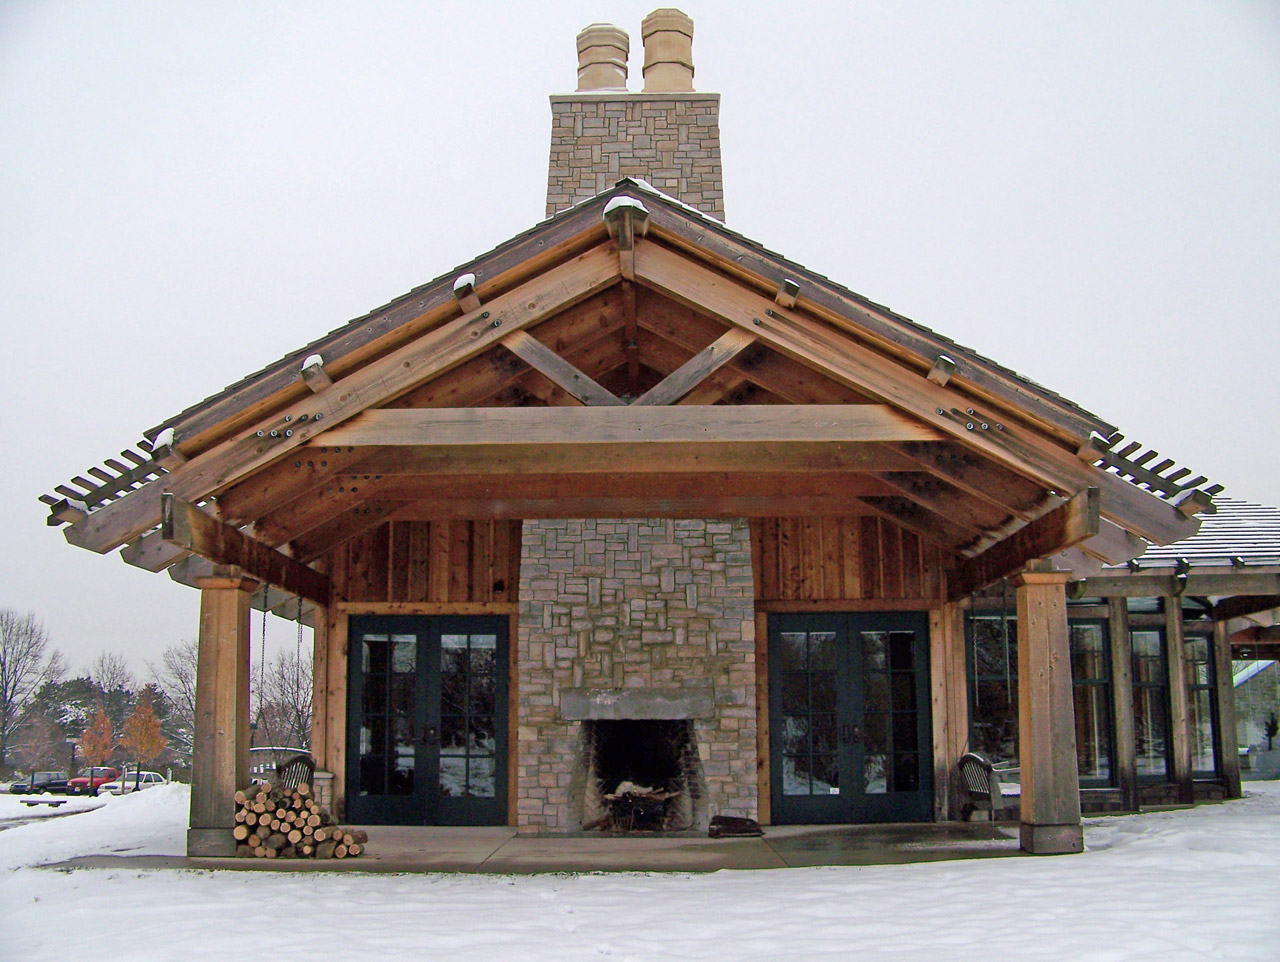 Building With Outdoor Fireplace Free Stock Photo